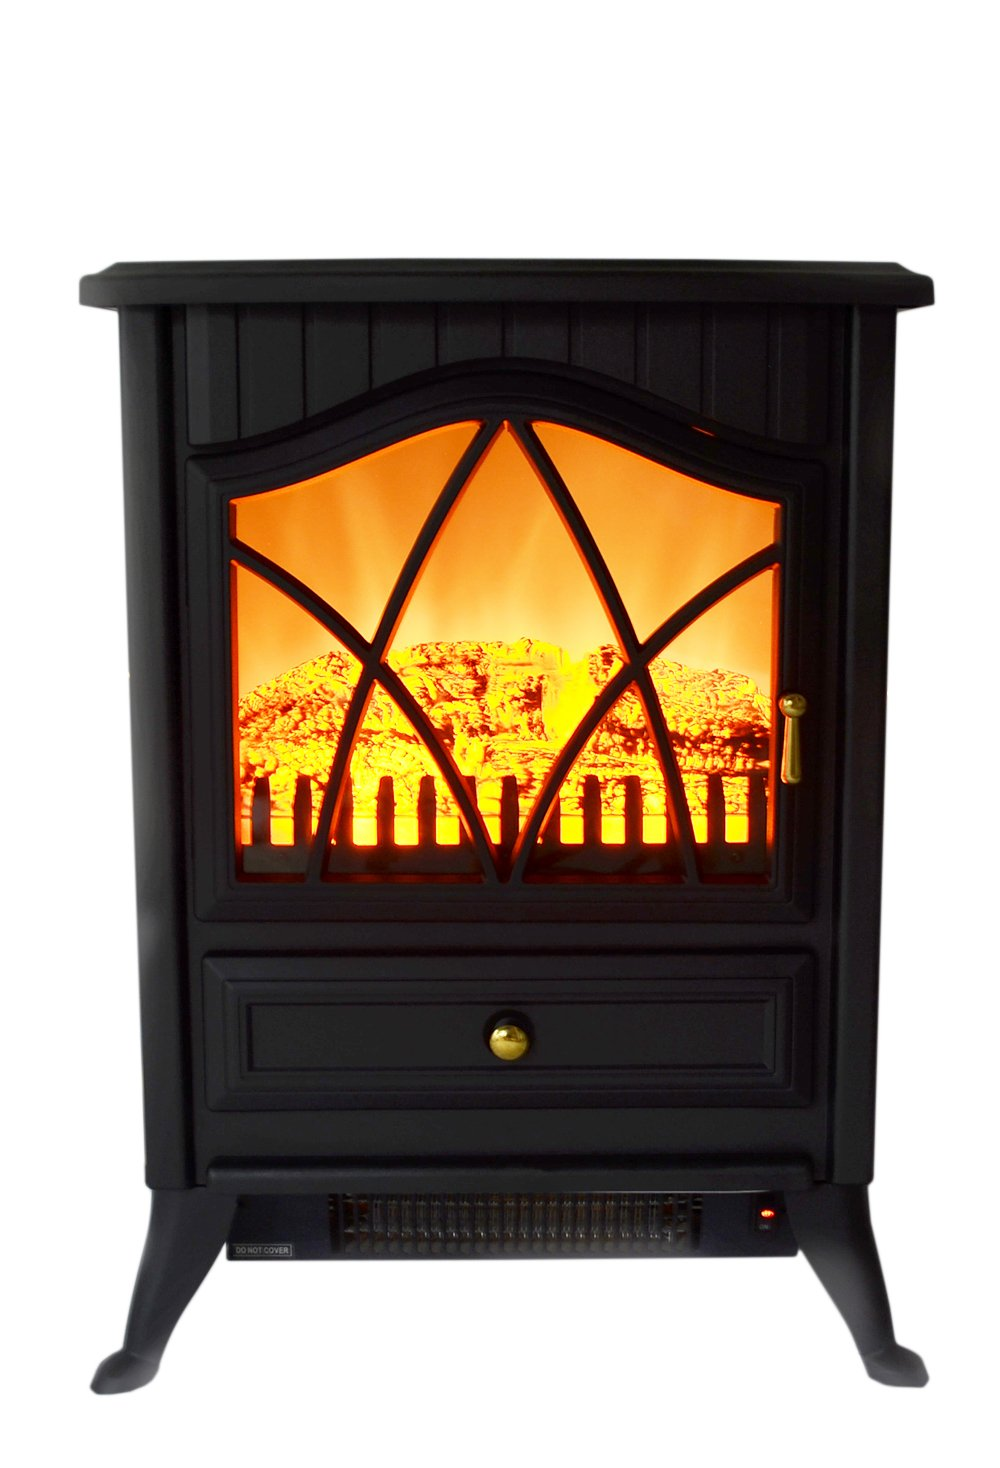 "Amazon.com: AKDY 16"" Retro-Style Floor Freestanding Vintage Electric Stove Heater Fireplace AK-ND-18D2P (Cool Black): Home & Kitchen"